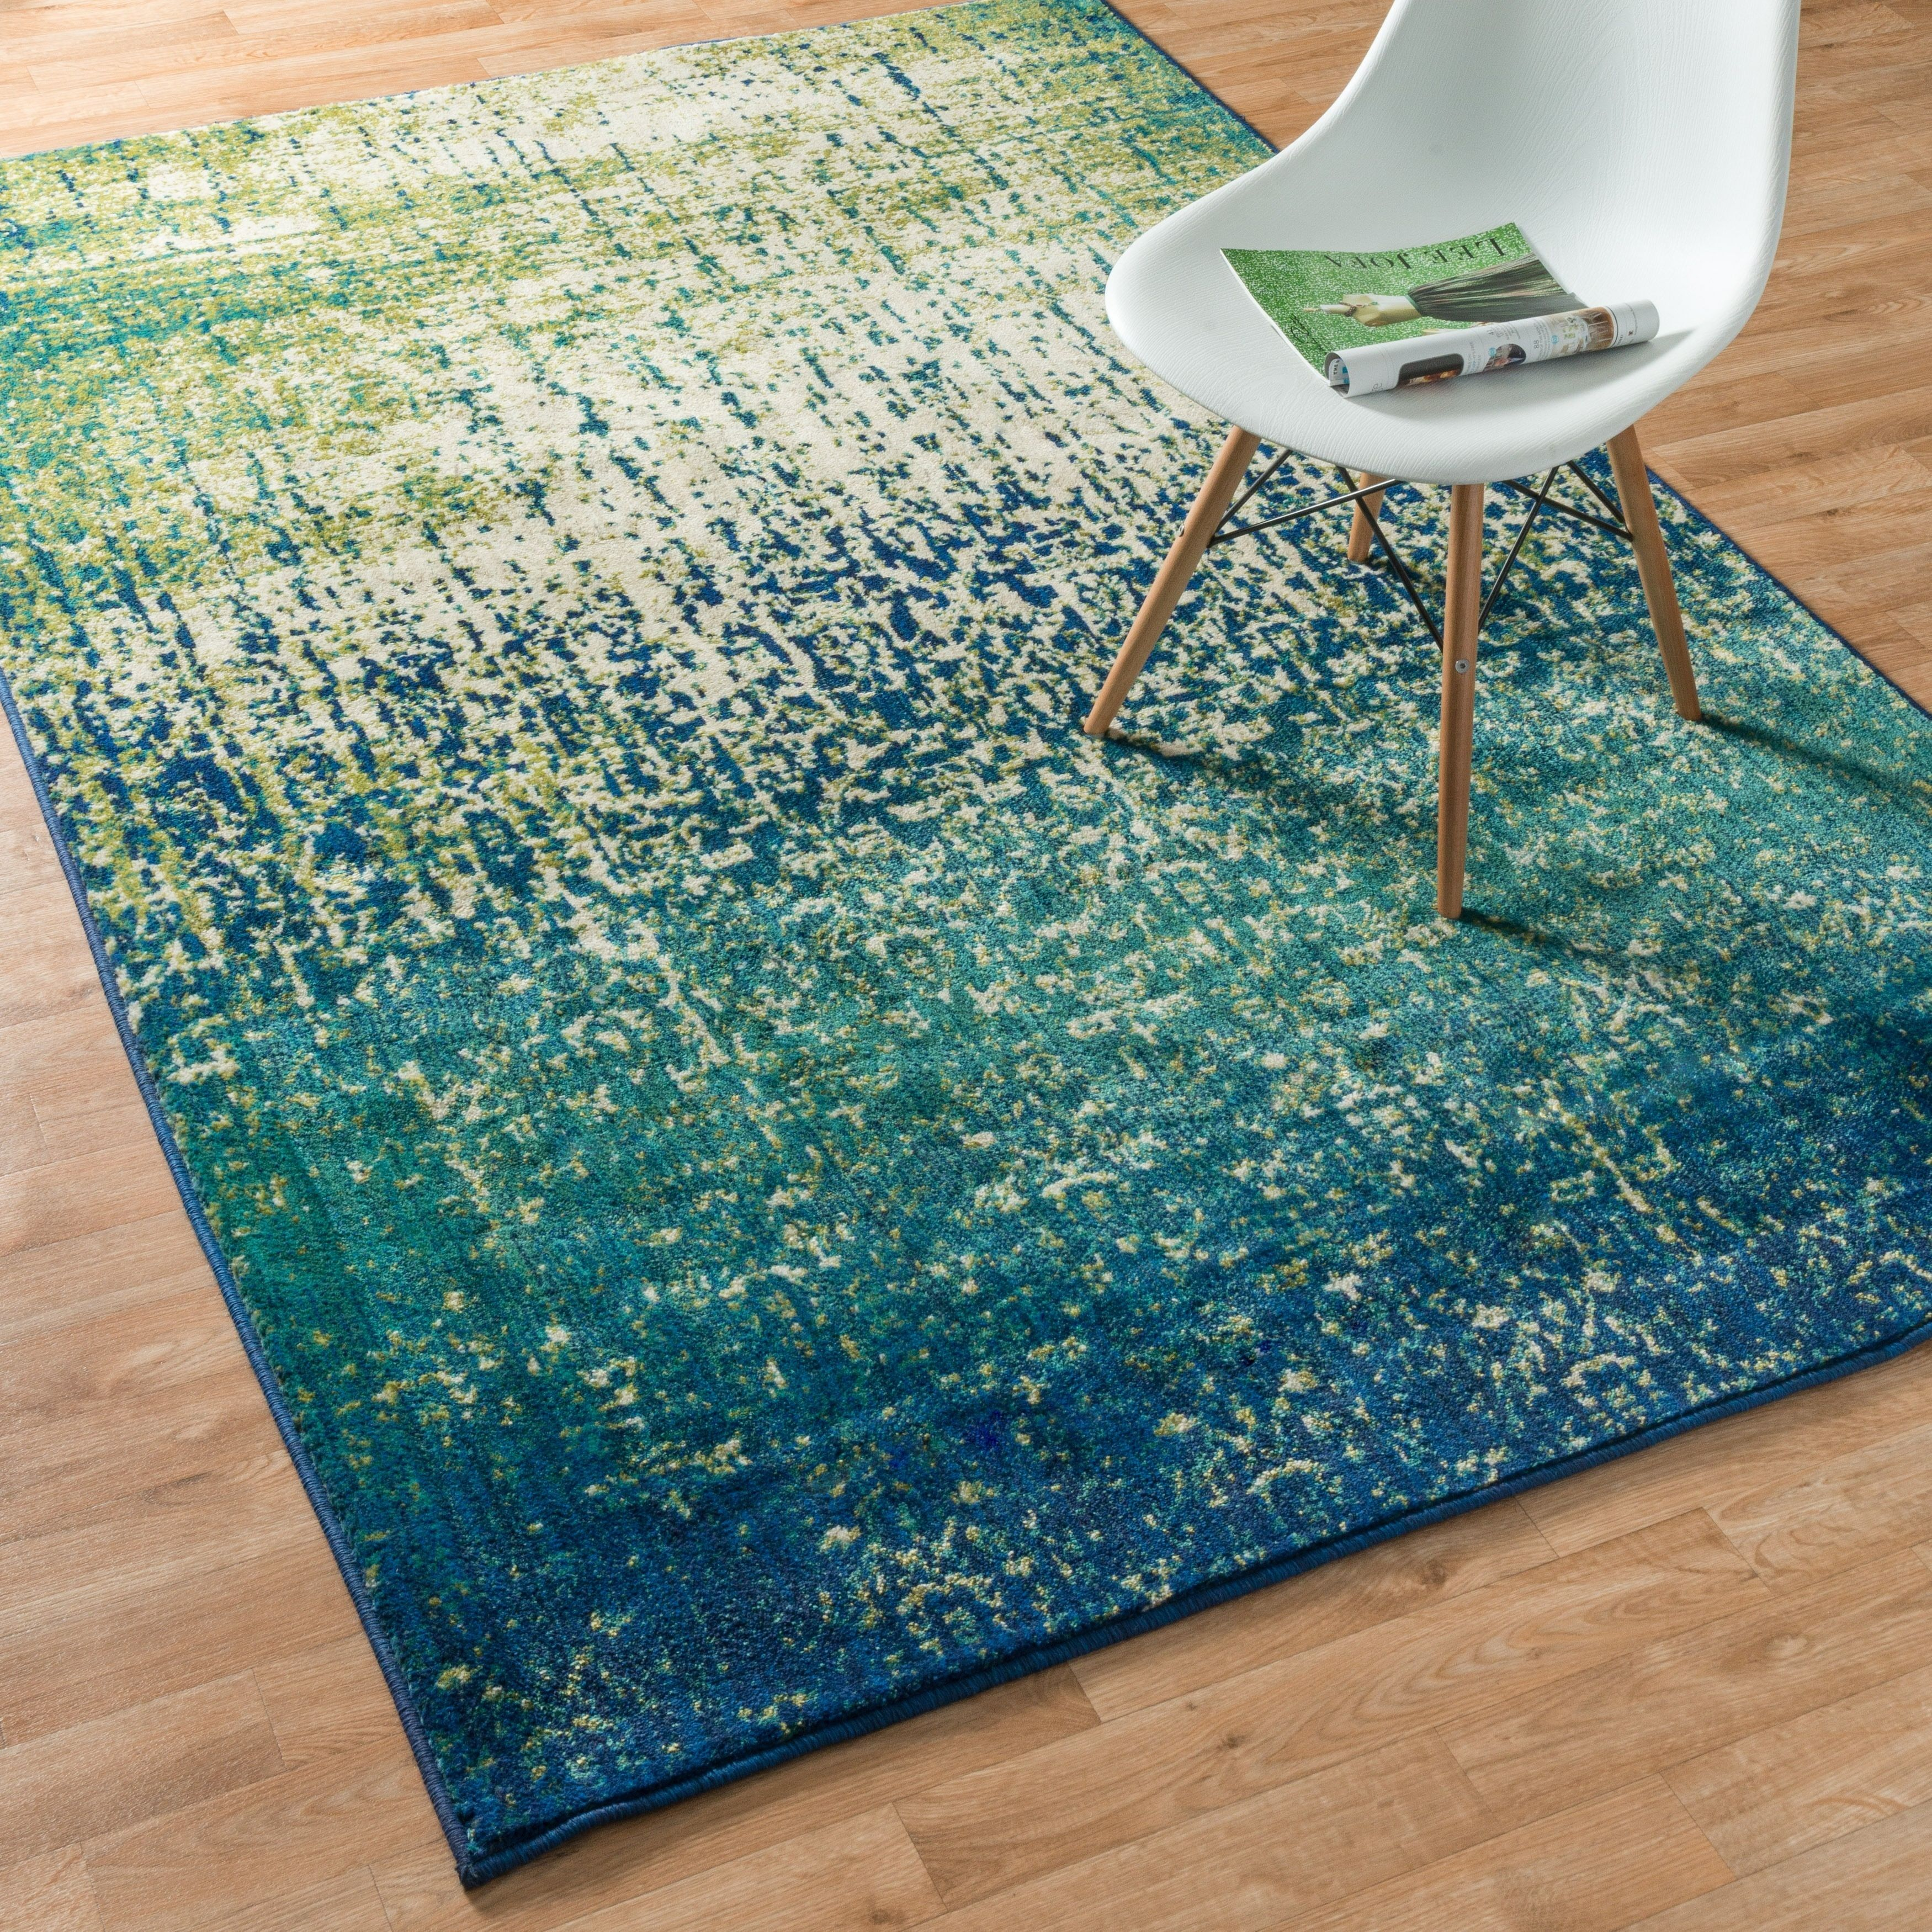 7x9   10x14 Rugs: Use Large Area Rugs To Bring A New Mood To An